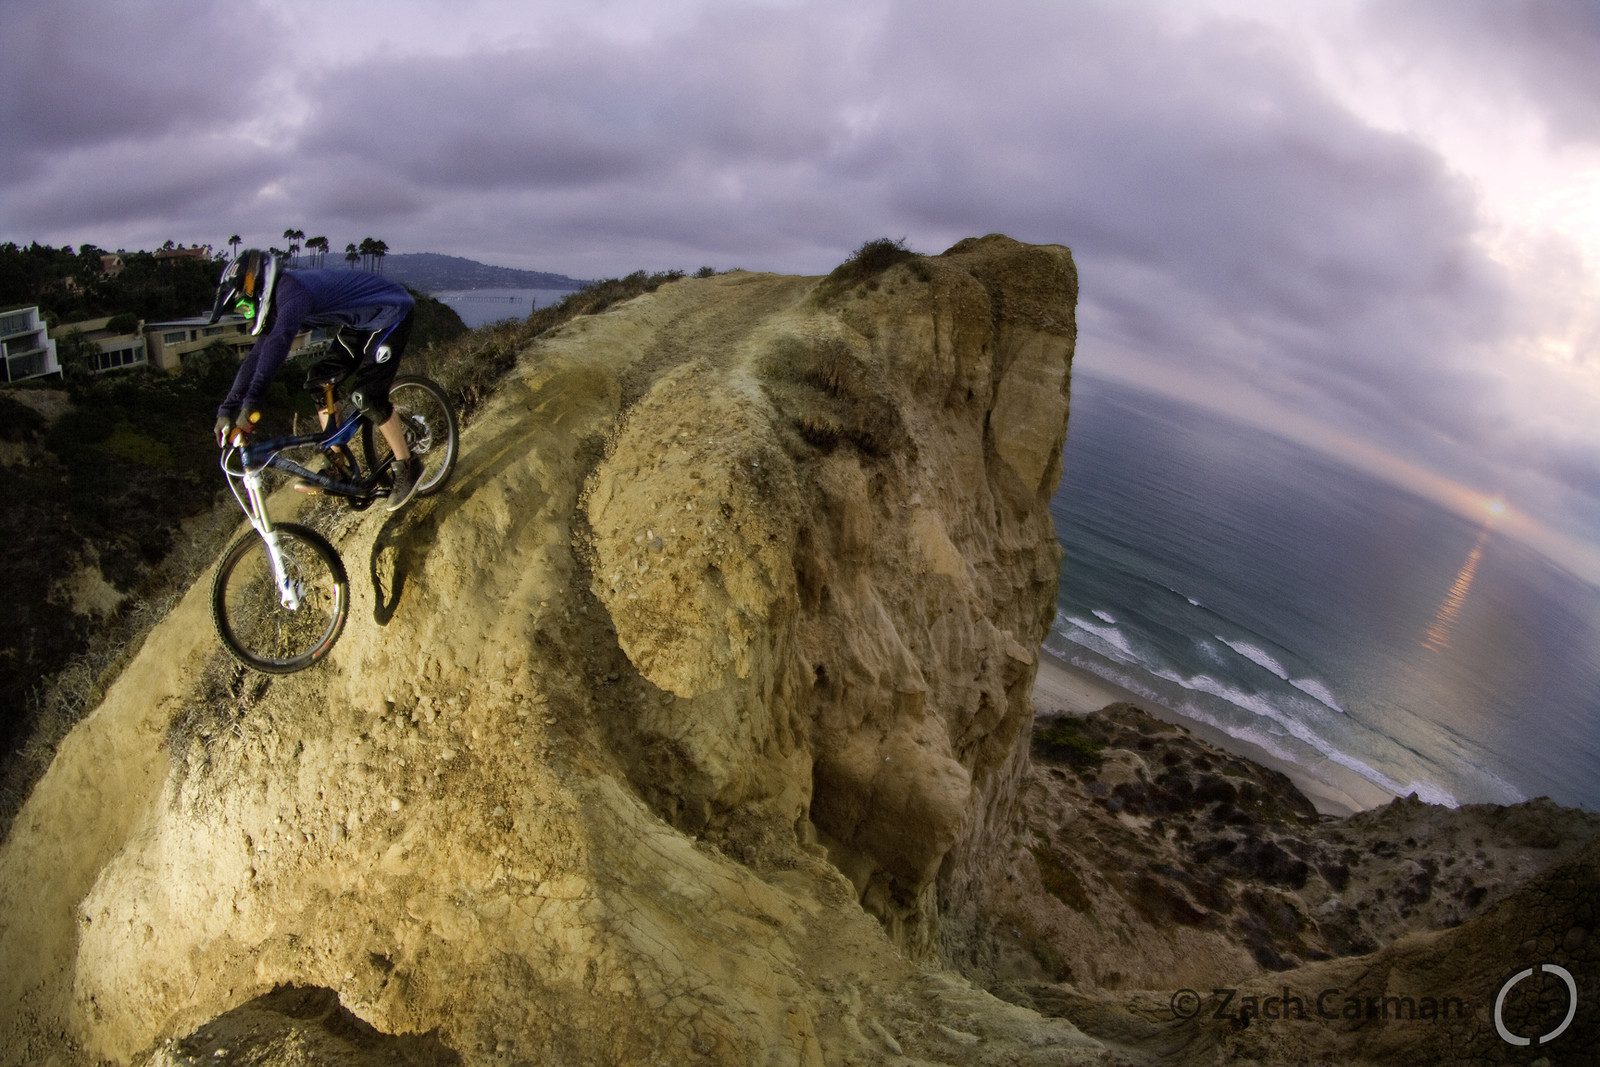 Visser ocean drop - Captures by Carman - Mountain Biking Pictures - Vital MTB